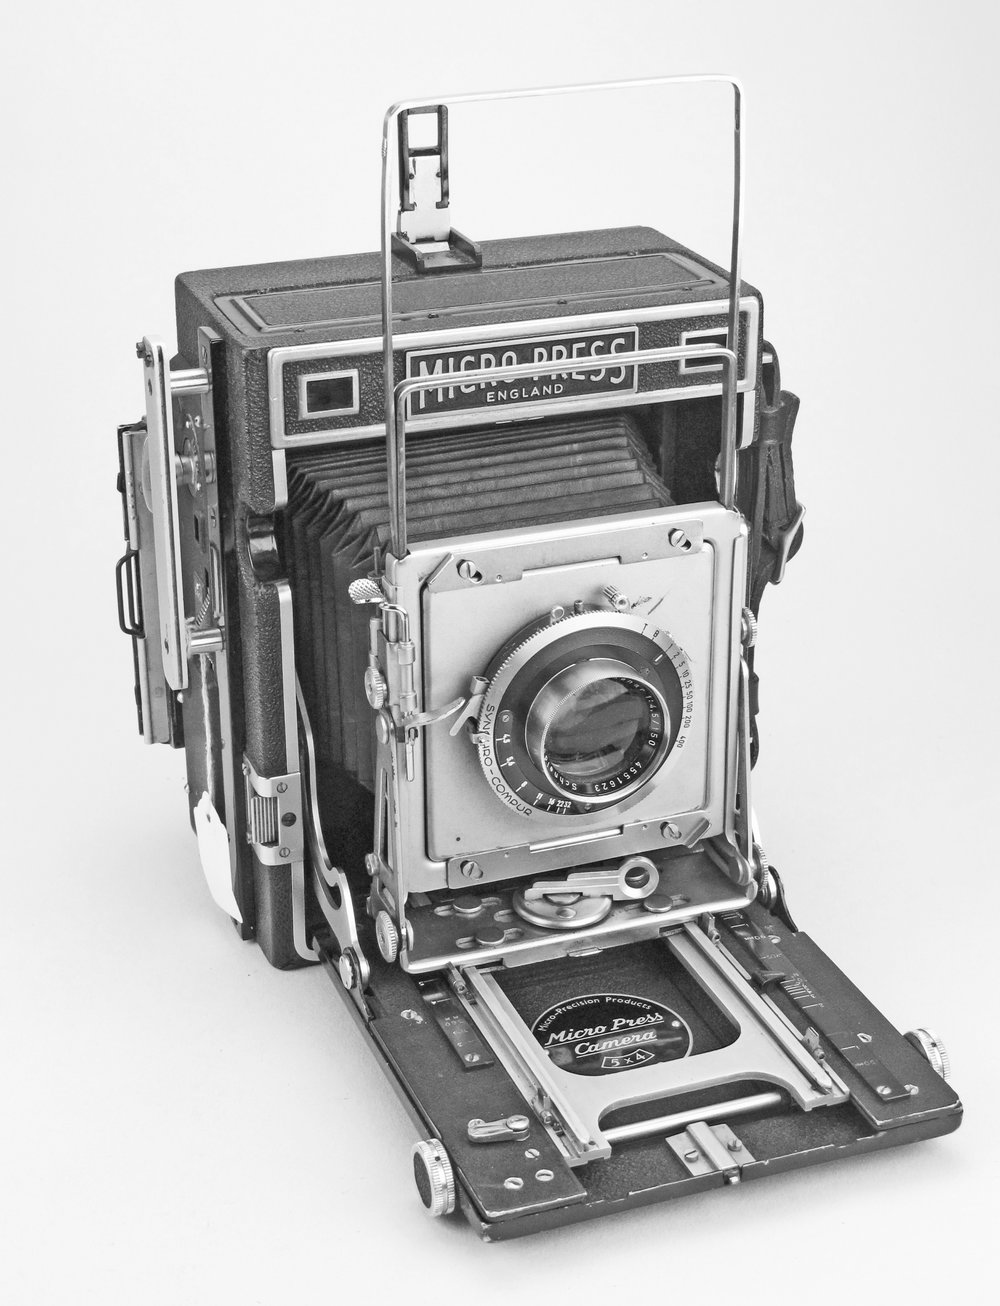 [Fig.13] MPP Micropress Camera with Xenar f/4.5 150mm lens and spring back for 5x4 plates, introduced in 1951.